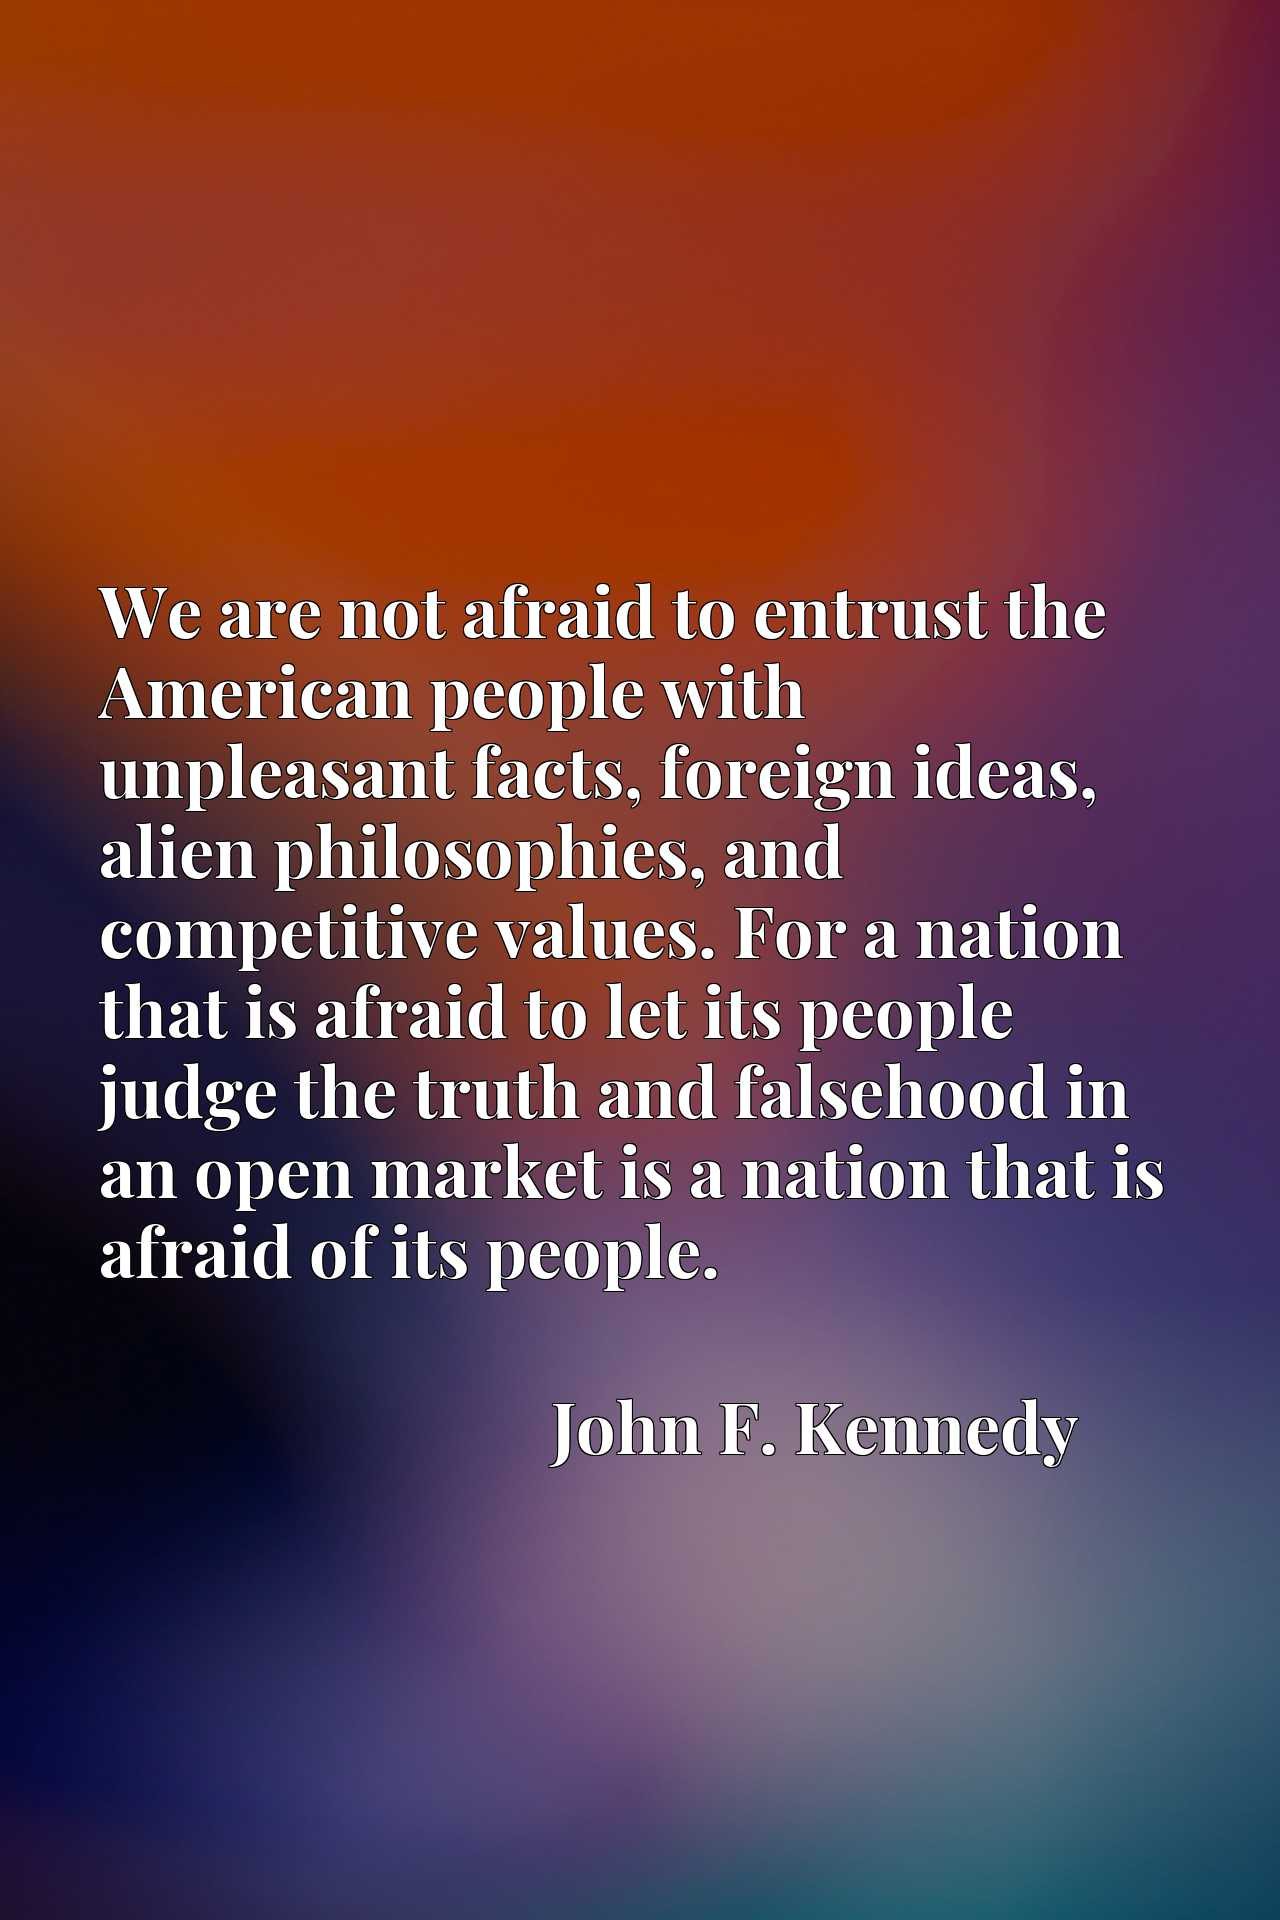 We are not afraid to entrust the American people with unpleasant facts, foreign ideas, alien philosophies, and competitive values. For a nation that is afraid to let its people judge the truth and falsehood in an open market is a nation that is afraid of its people.